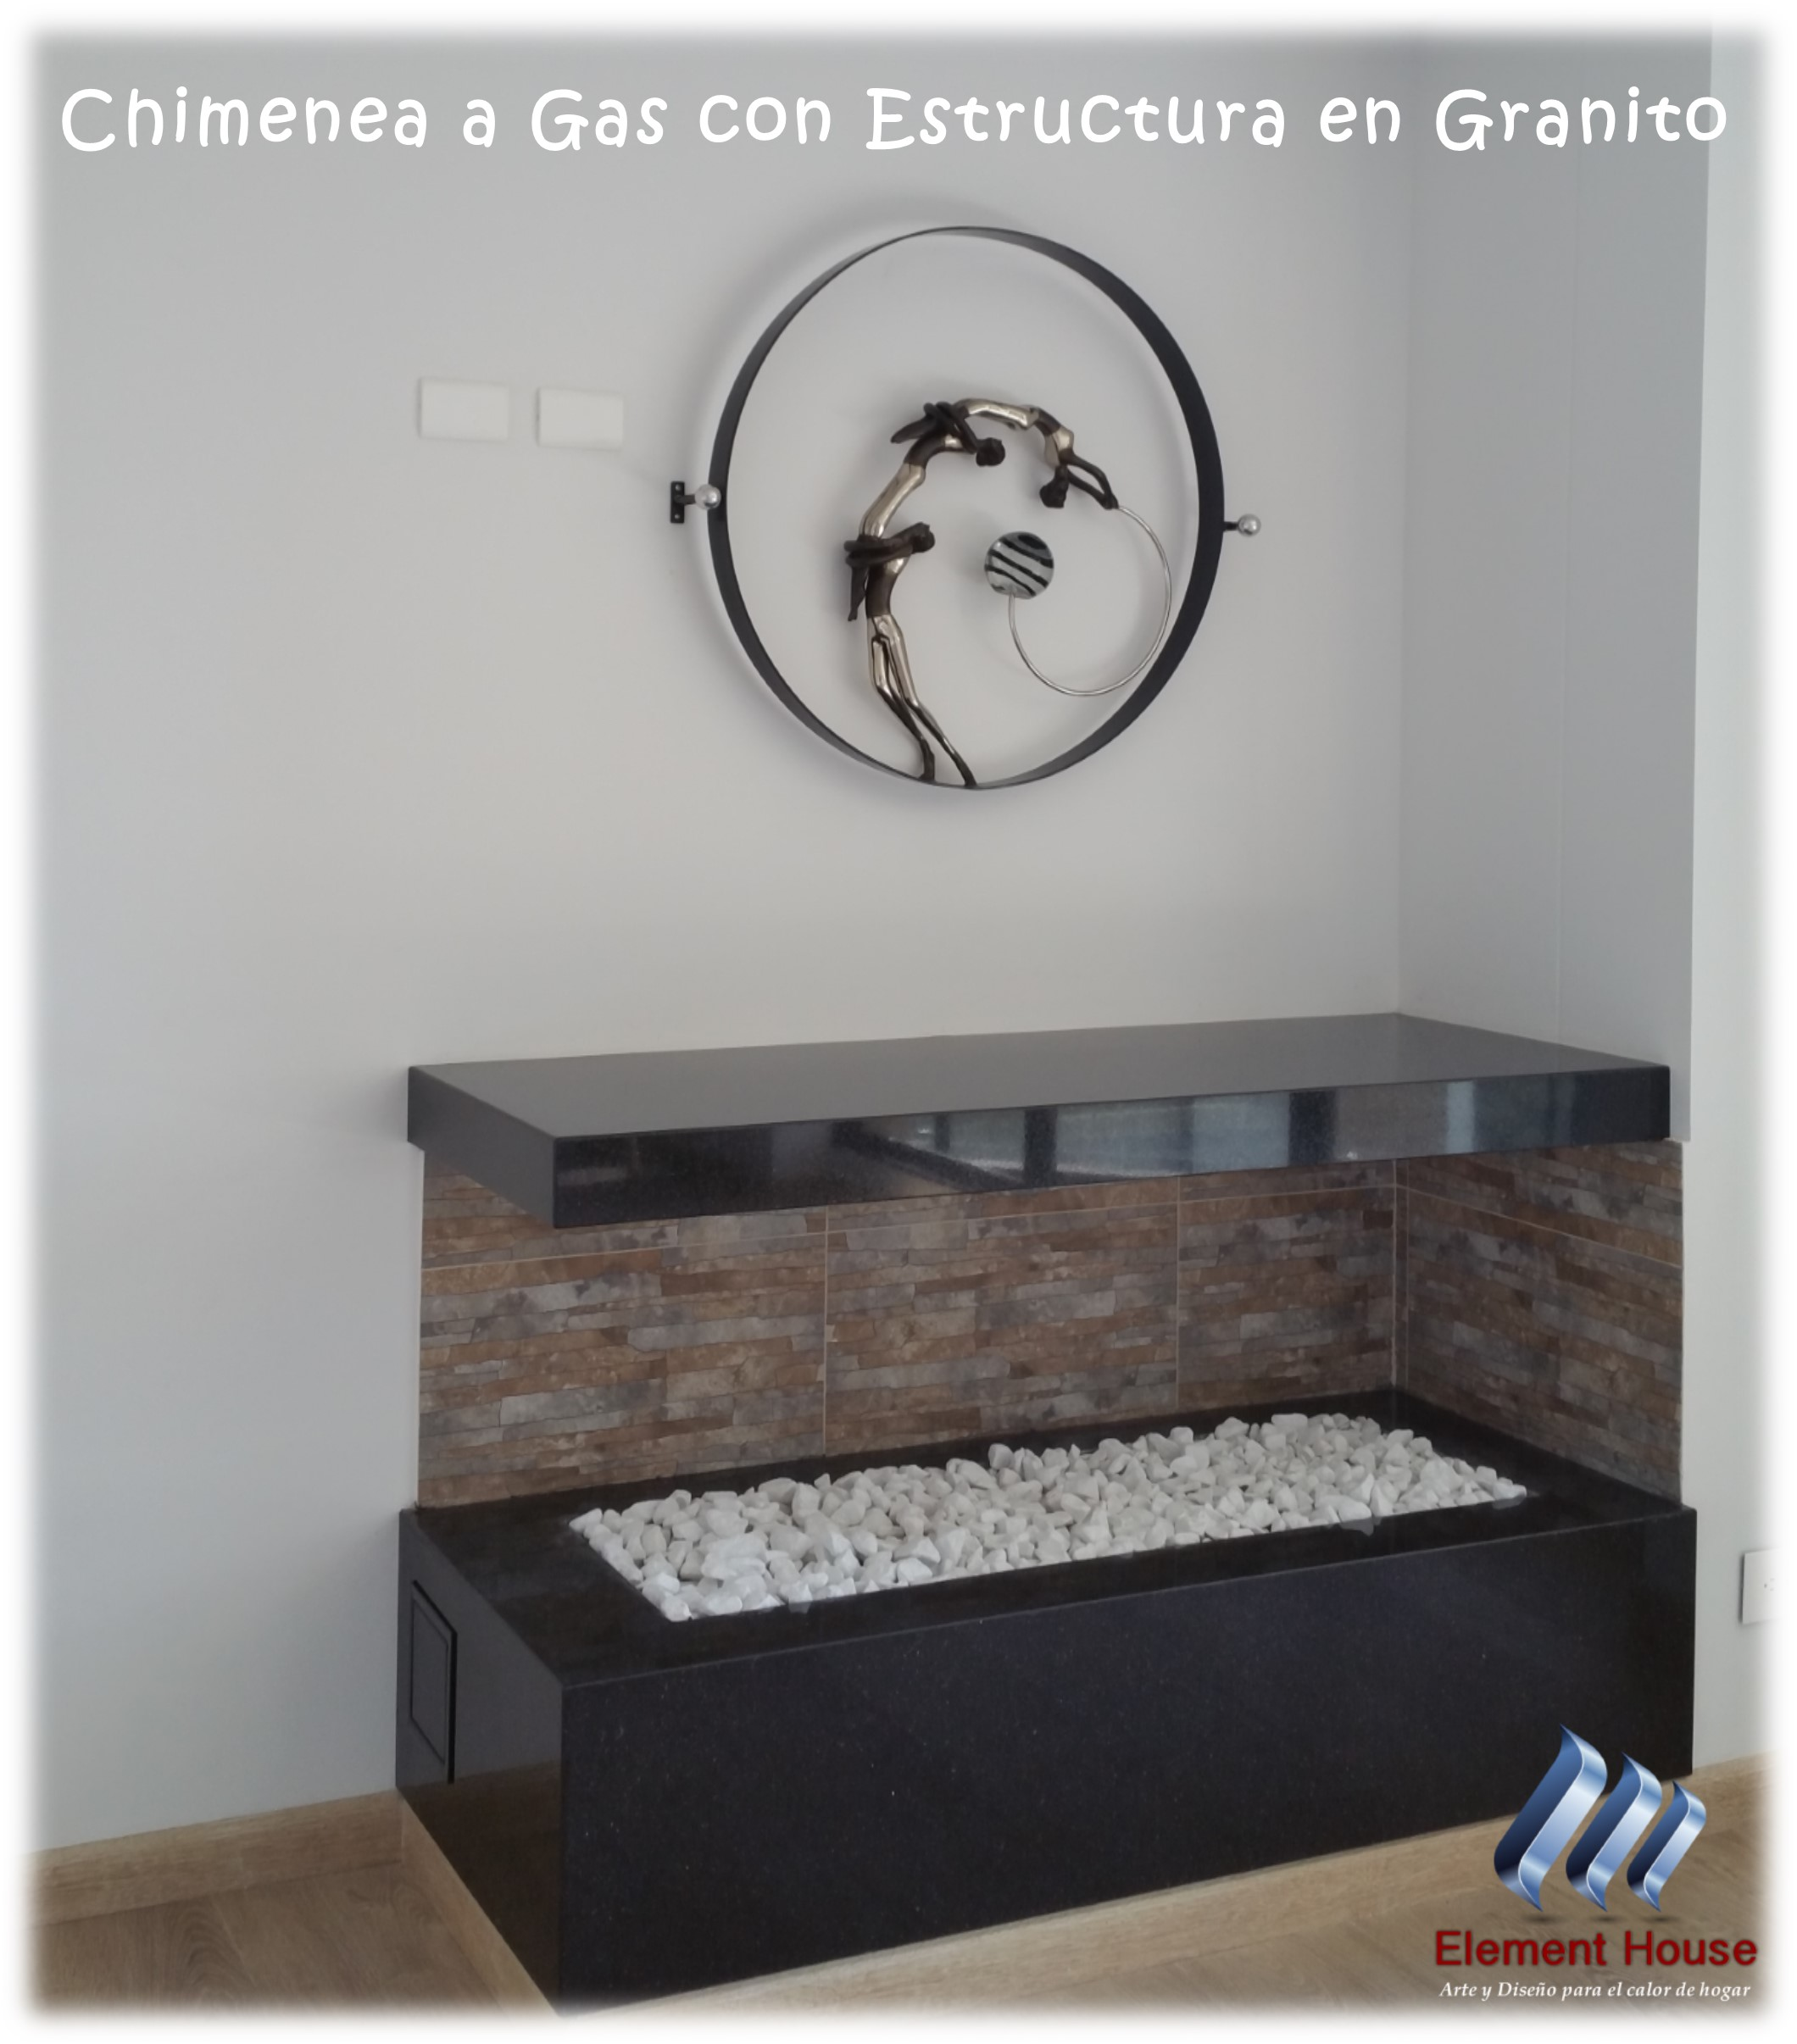 CHIMENEAS A GAS ELEMENT HOUSE (14)